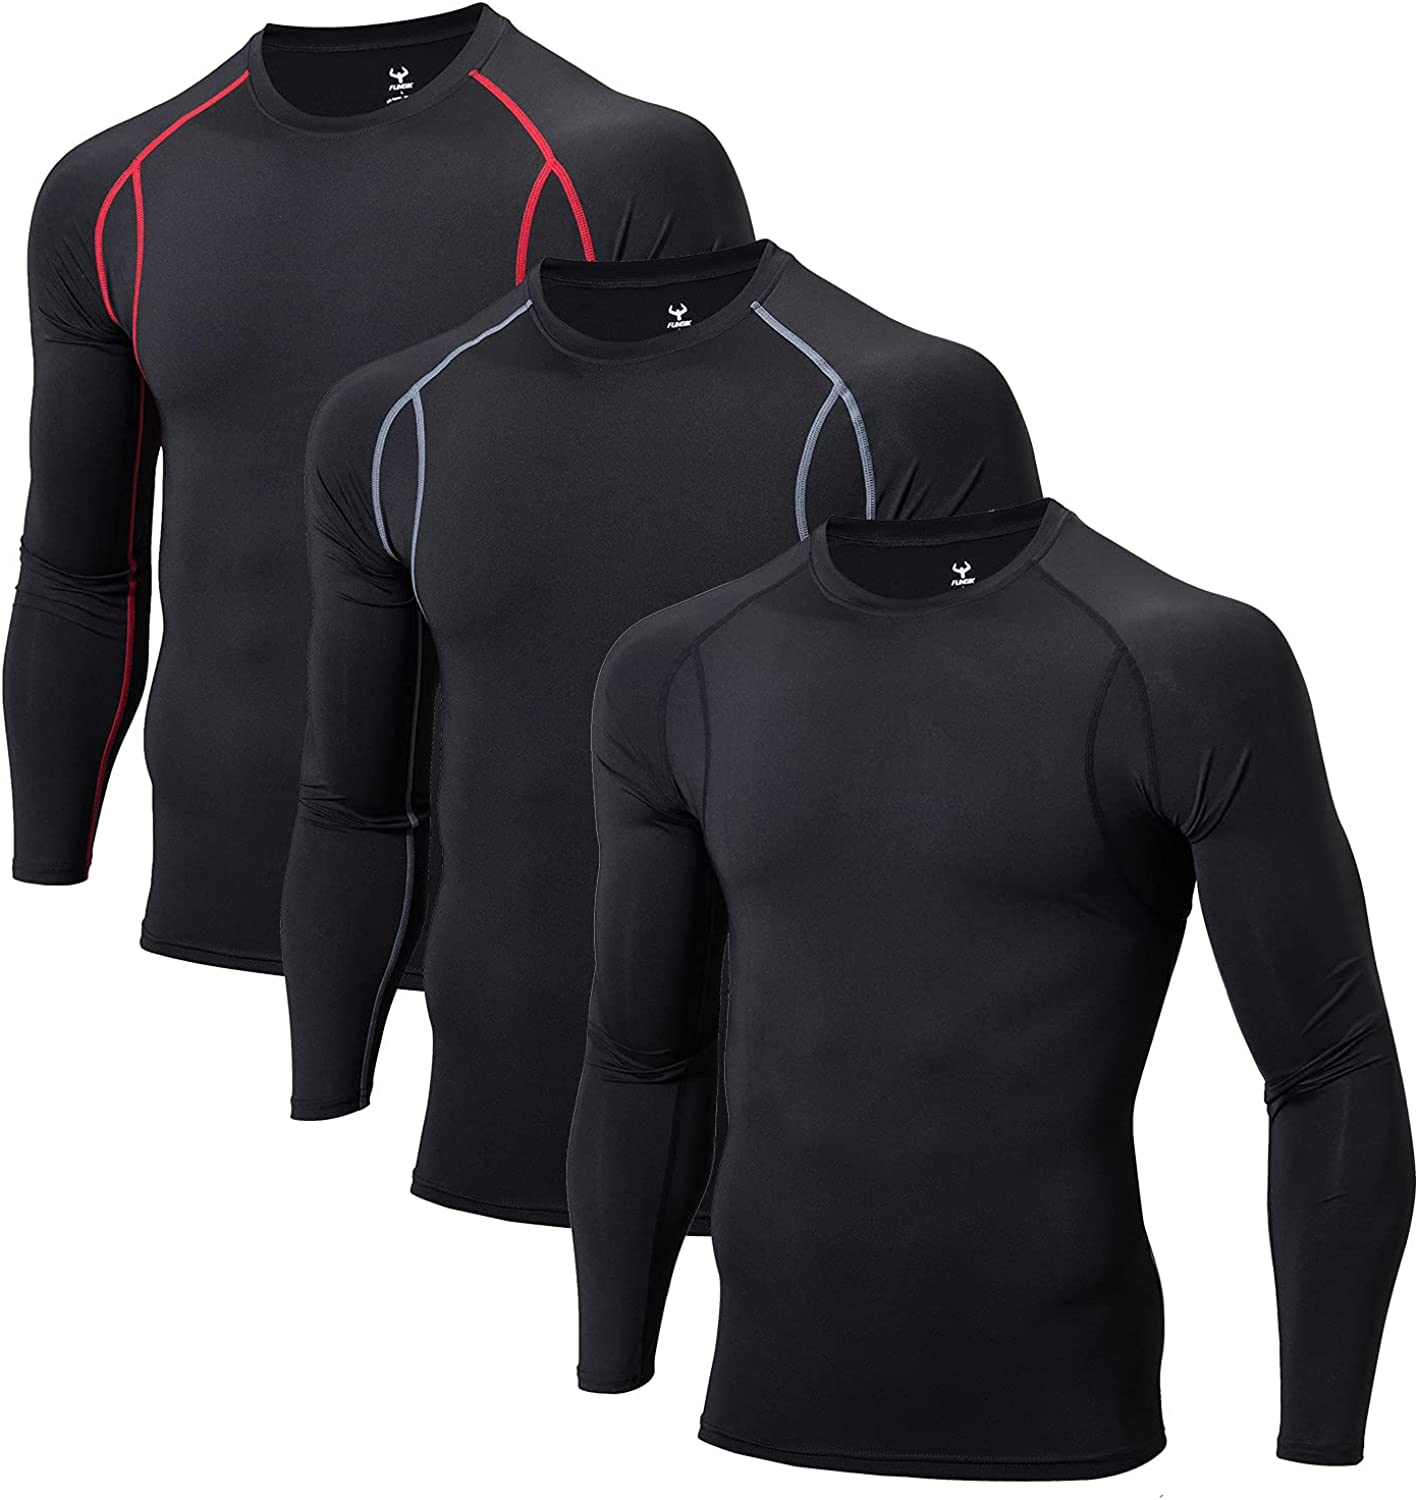 FUNGIK Long Sleeve Compression Shirts Fees free for Men 3 5% OFF Men's Pack Cool